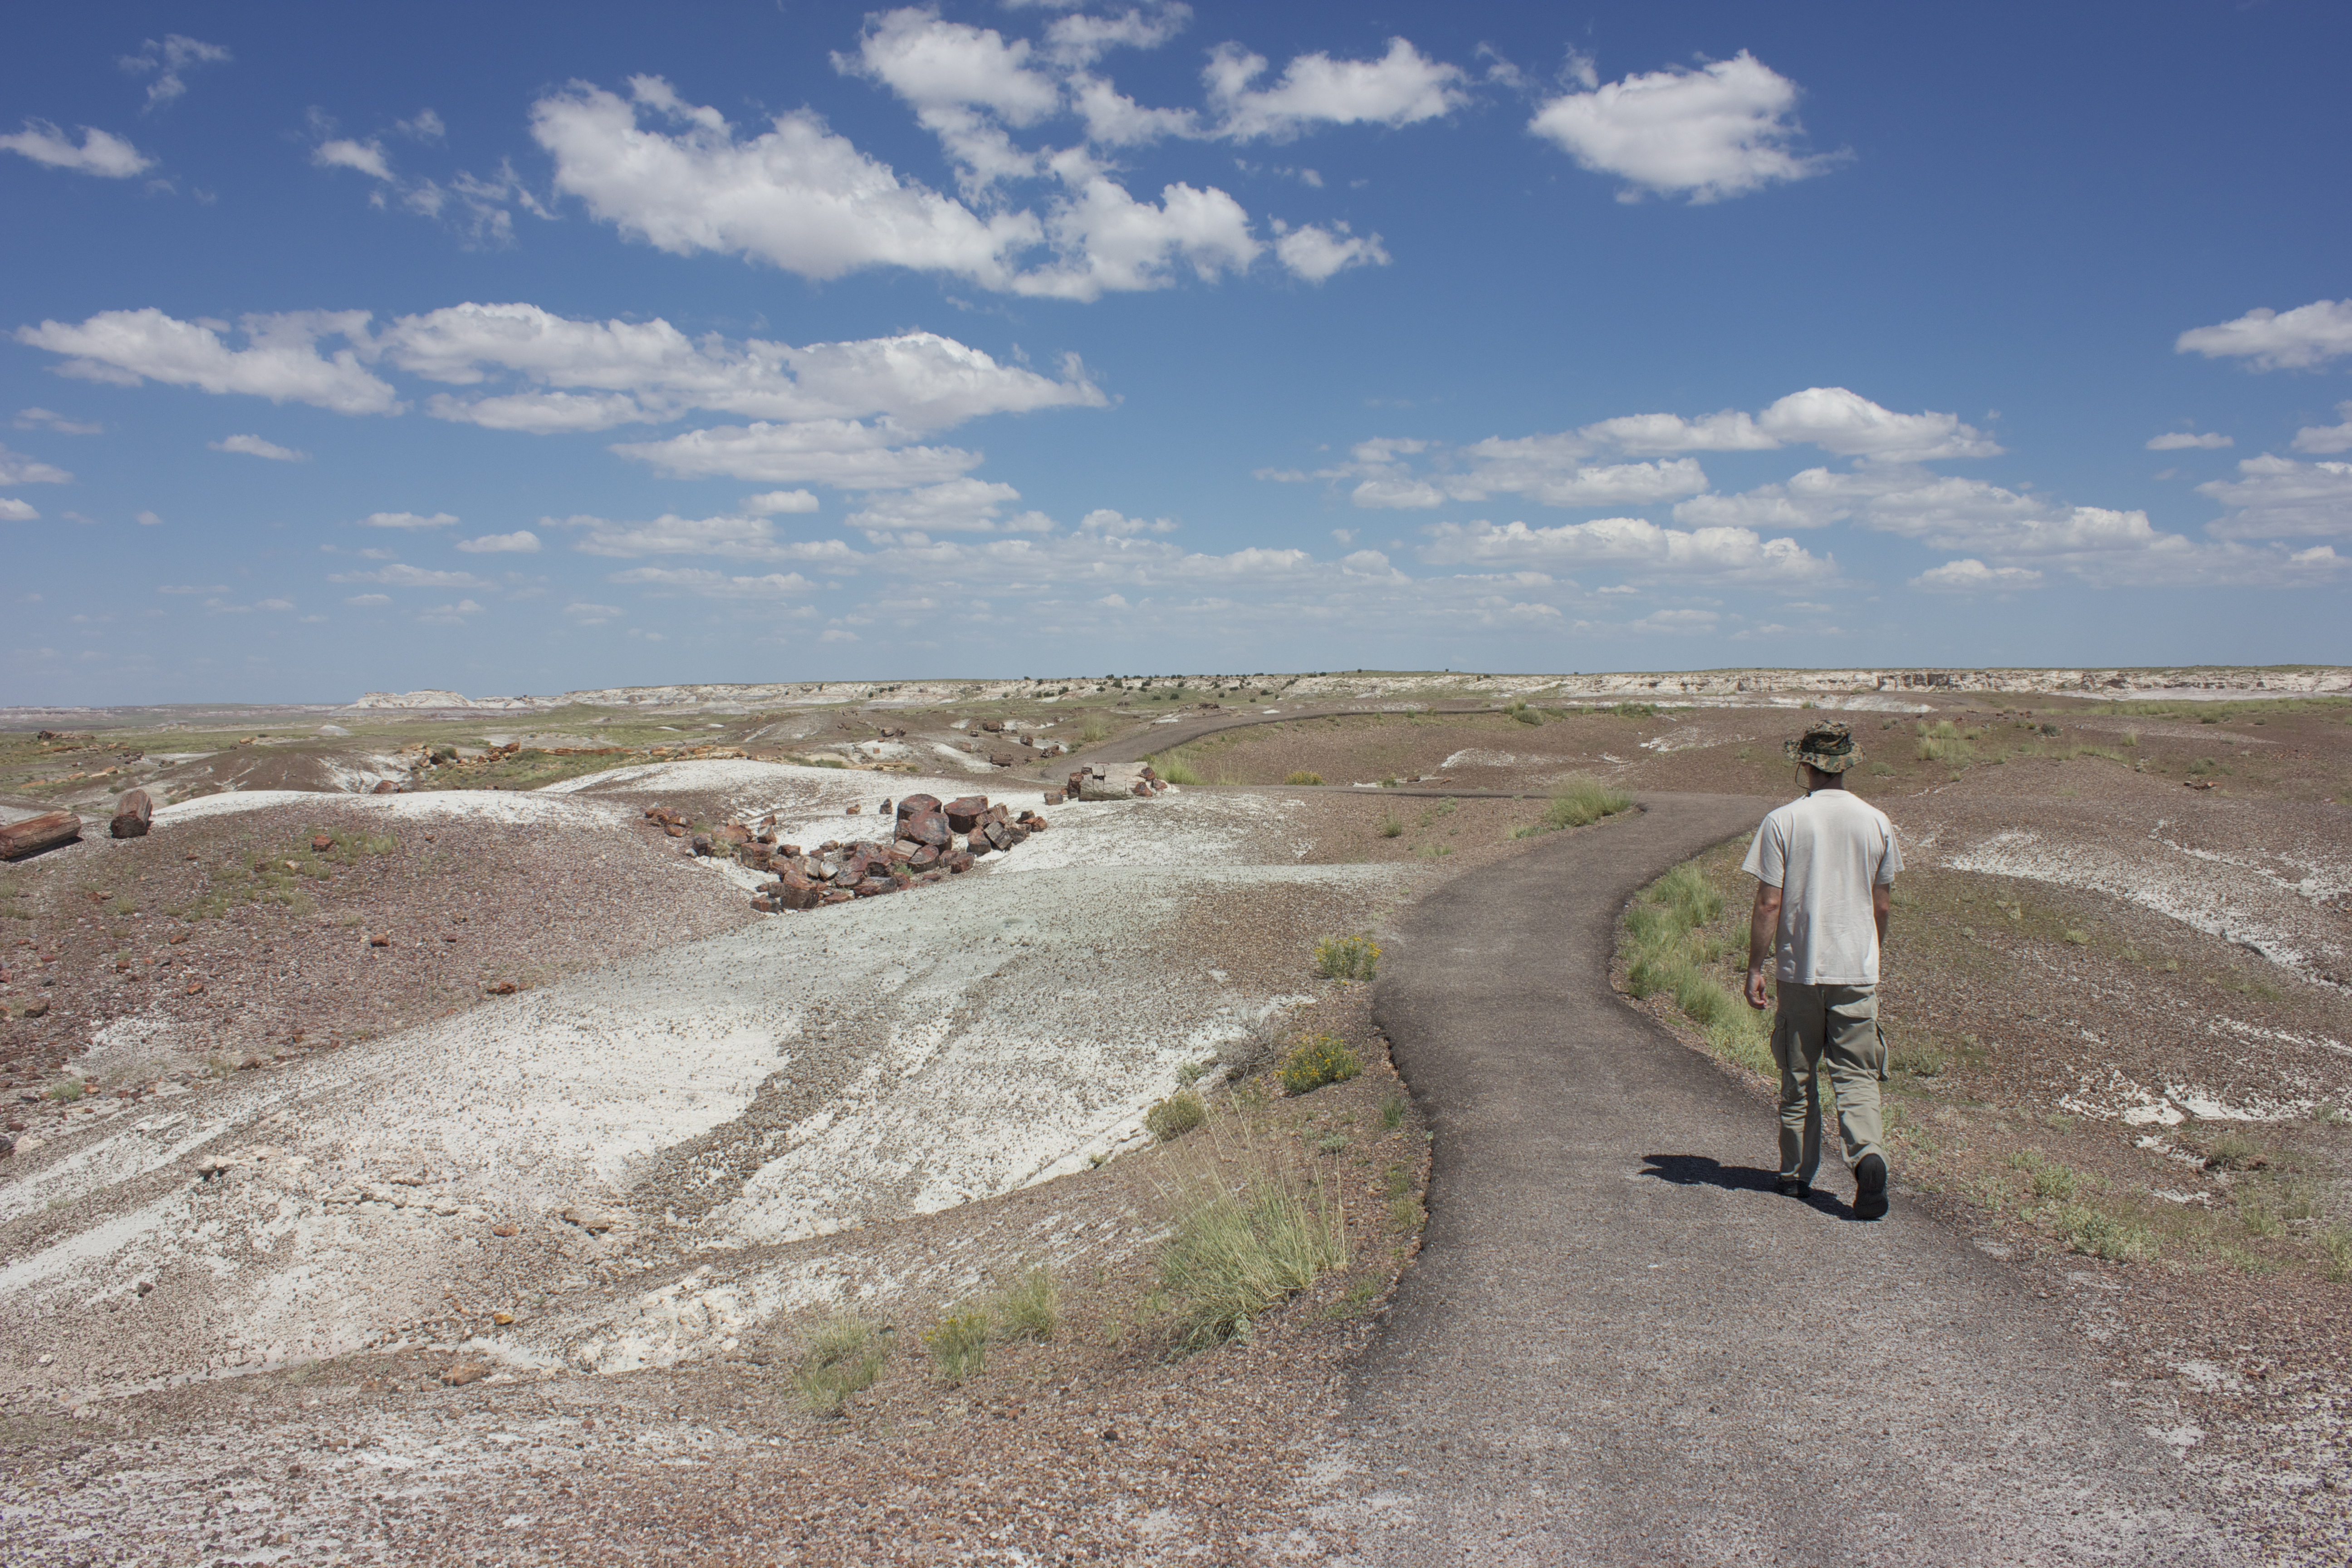 Petrified wood in this desolate landscape has been fossilized and turned to stone. A man walks a lonely road.